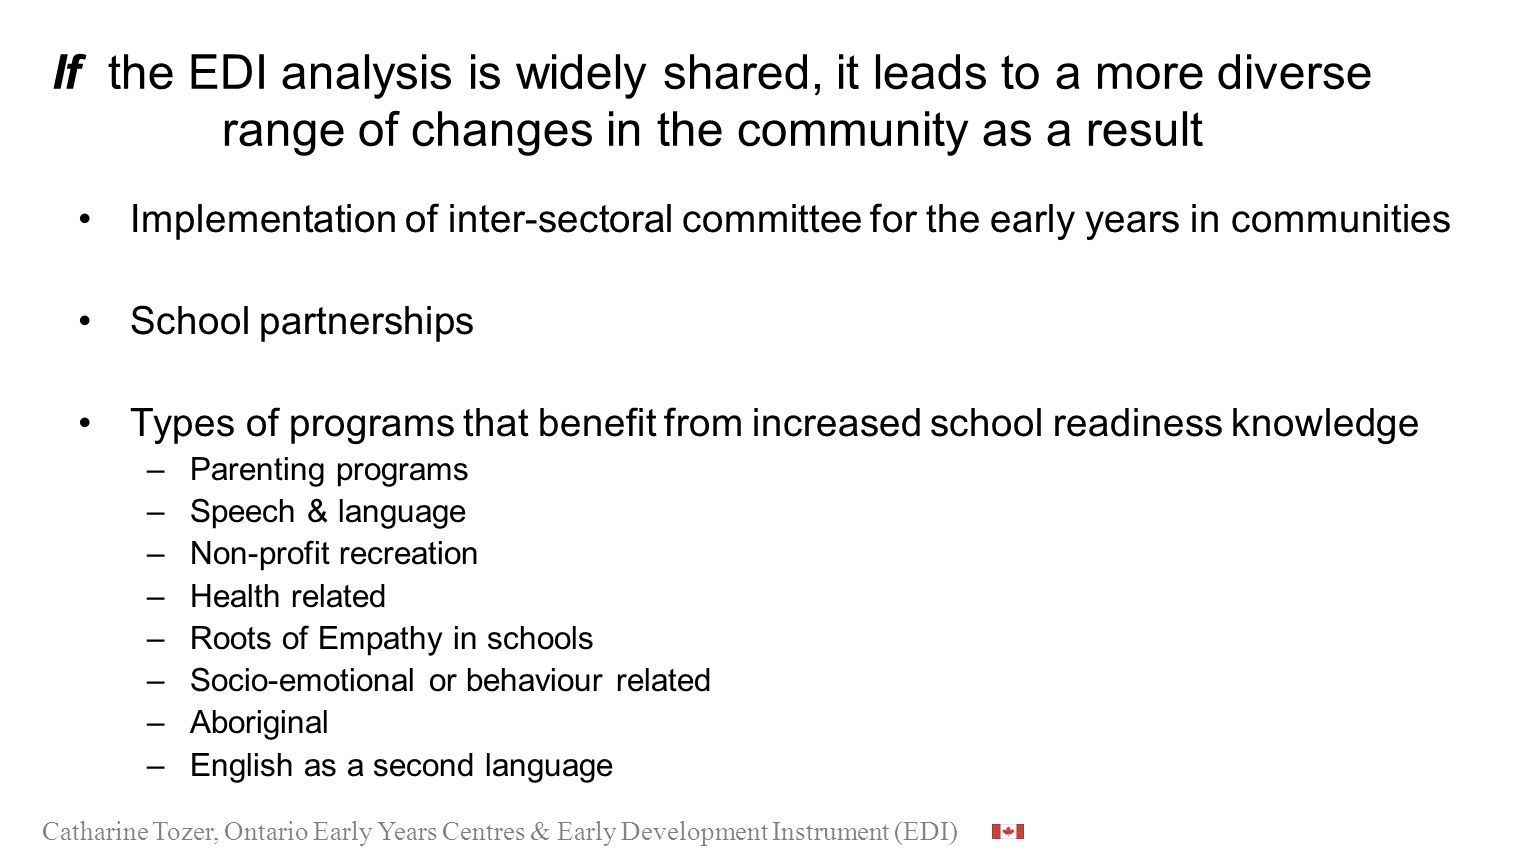 If the EDI analysis is widely shared, it leads to a more diverse range of changes in the community as a result Implementation of inter-sectoral committee for the early years in communities School partnerships Types of programs that benefit from increased school readiness knowledge –Parenting programs –Speech & language –Non-profit recreation –Health related –Roots of Empathy in schools –Socio-emotional or behaviour related –Aboriginal –English as a second language Catharine Tozer, Ontario Early Years Centres & Early Development Instrument (EDI)